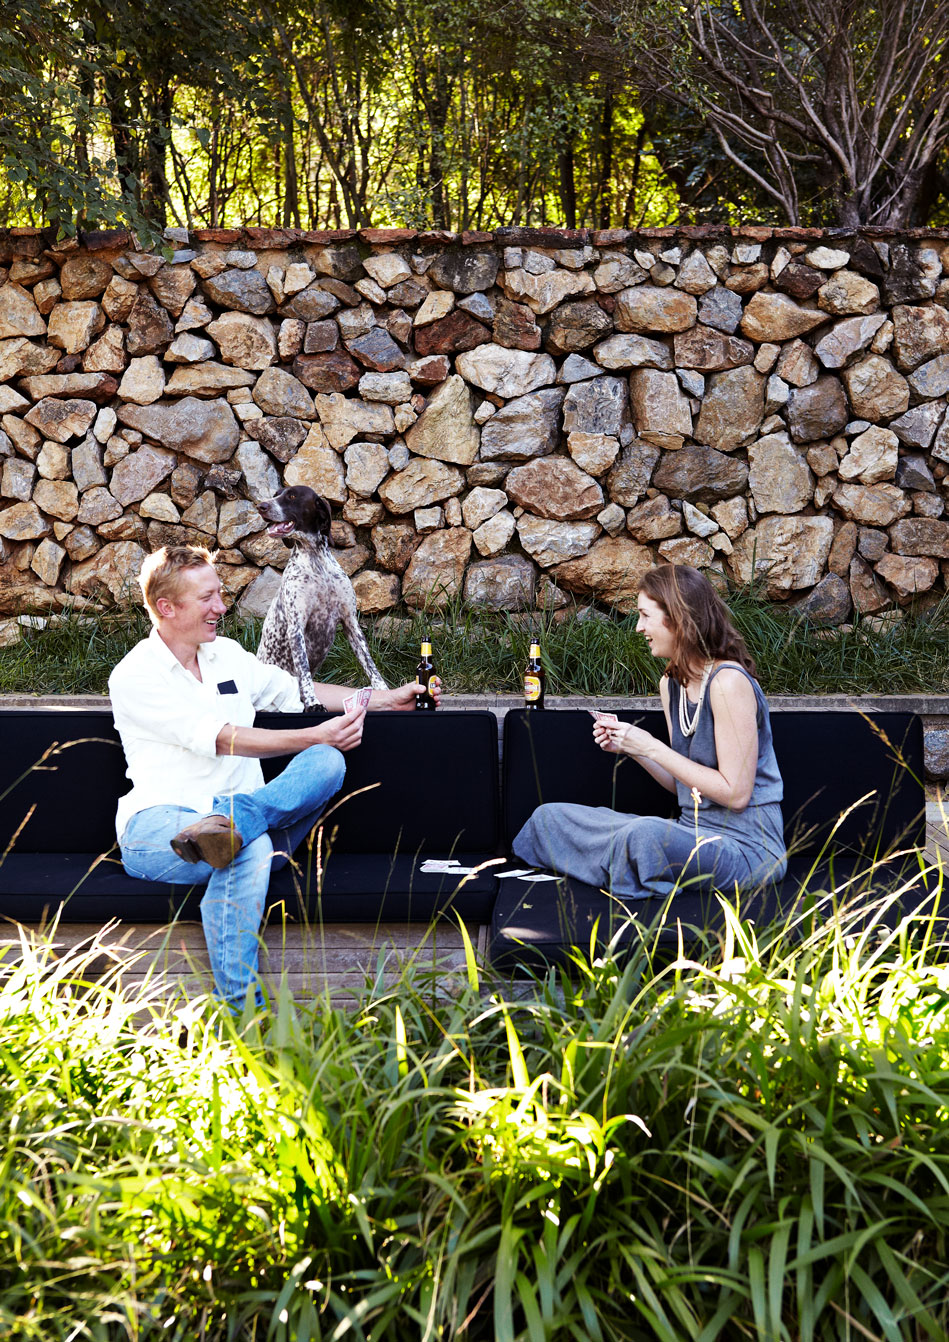 Lee and Lauren enjoy sundowners on the deck‭, ‬an outdoor entertainment and relaxation area that Lee sees as a modern reinterpretation of the traditional stoep or verandah‭, ‬where traditionally much outdoor entertaining and leisure time is spent in South Africa‭.‬